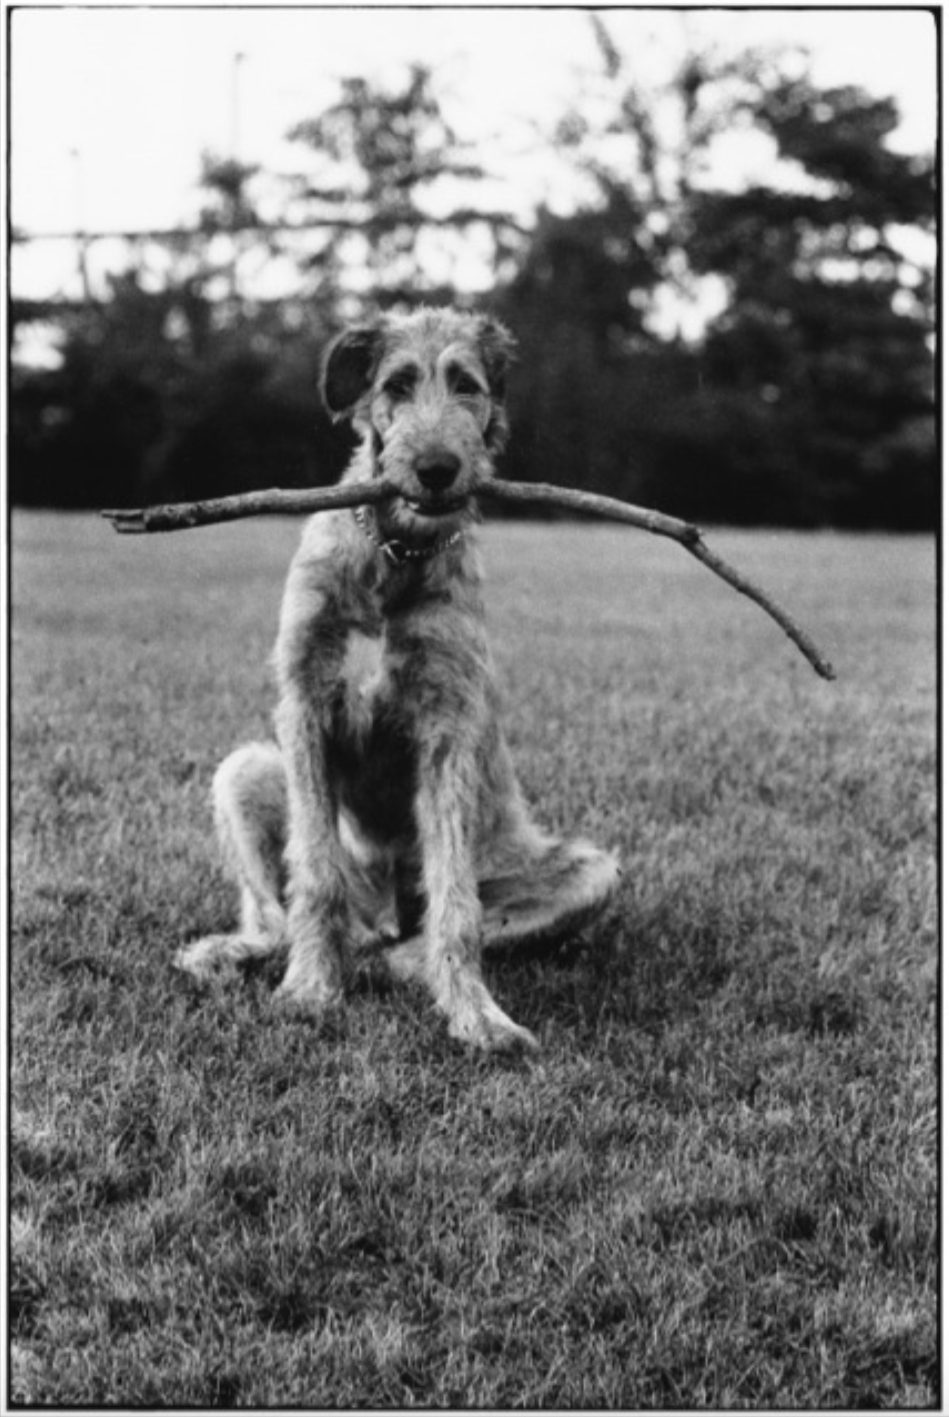 New Jersey, 1971 (dog with stick)